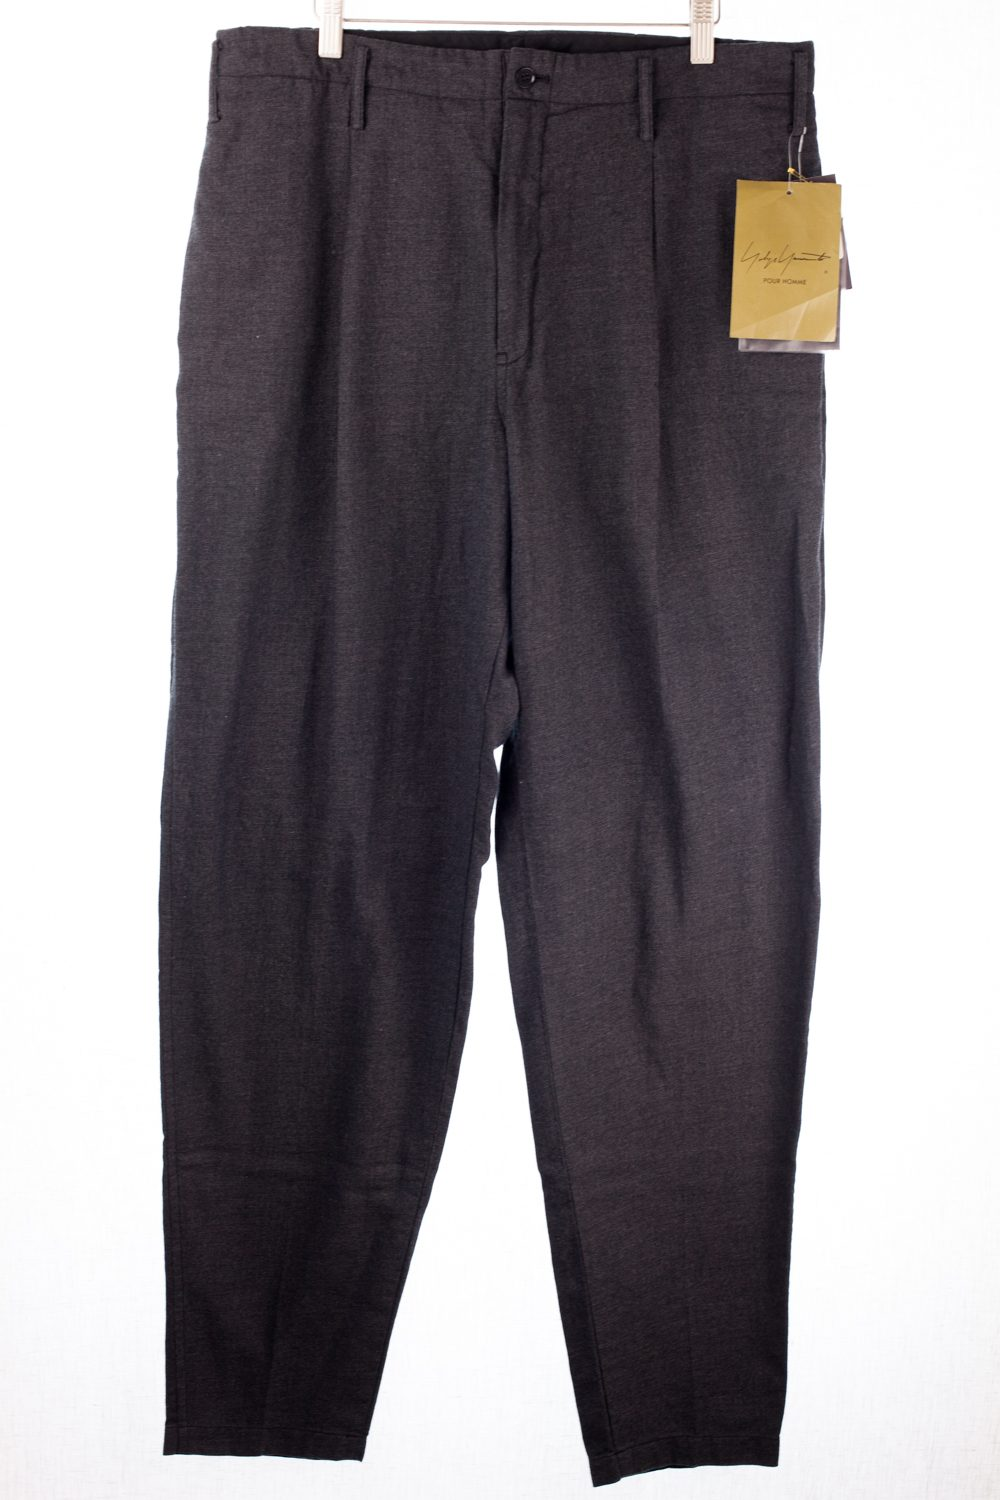 FW15 Balloon Pleated Trousers